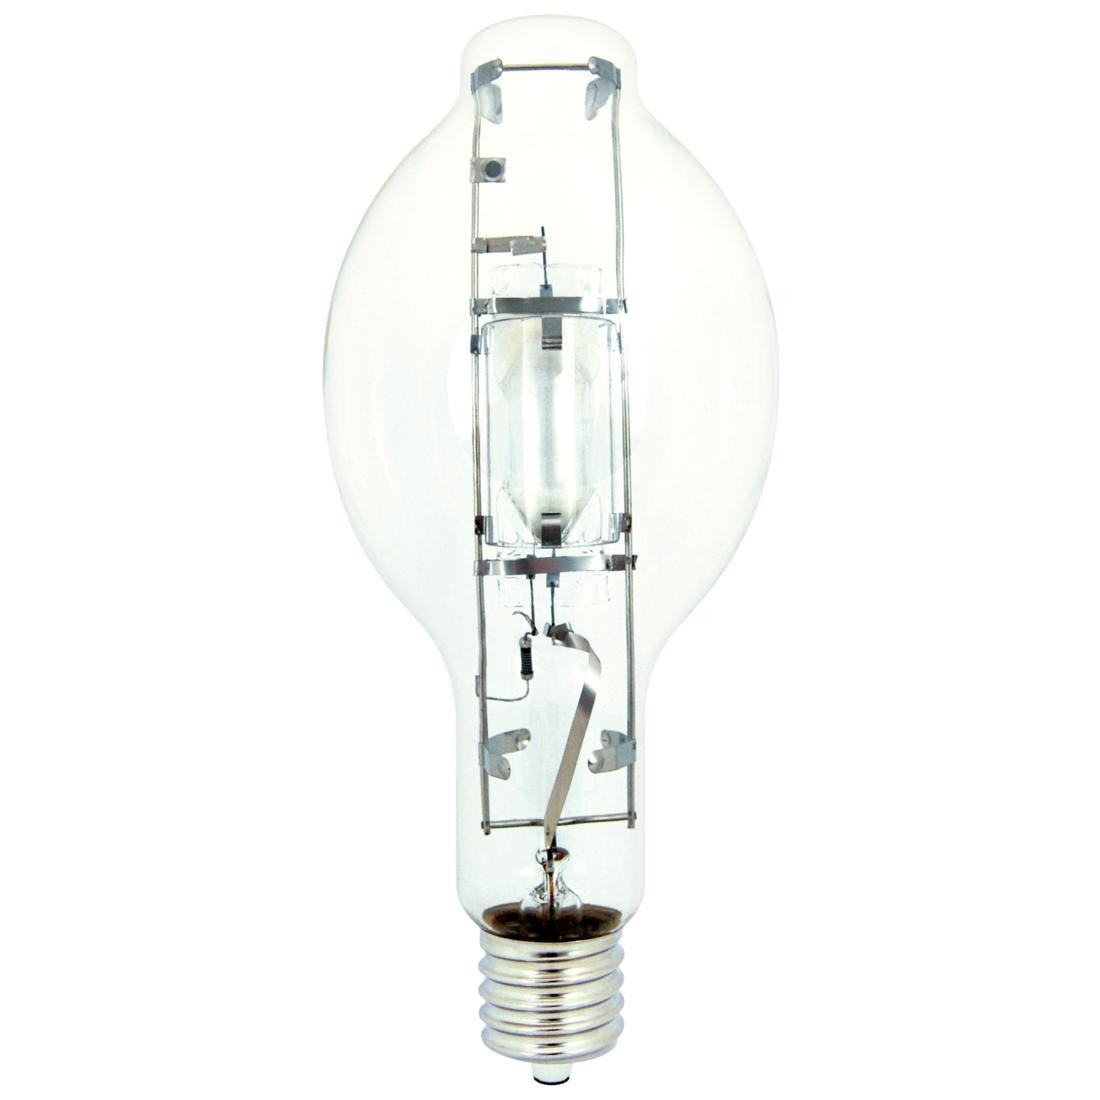 62 INFO 9 WATT LED BULB CIRCUIT DIAGRAM WITH VIDEO